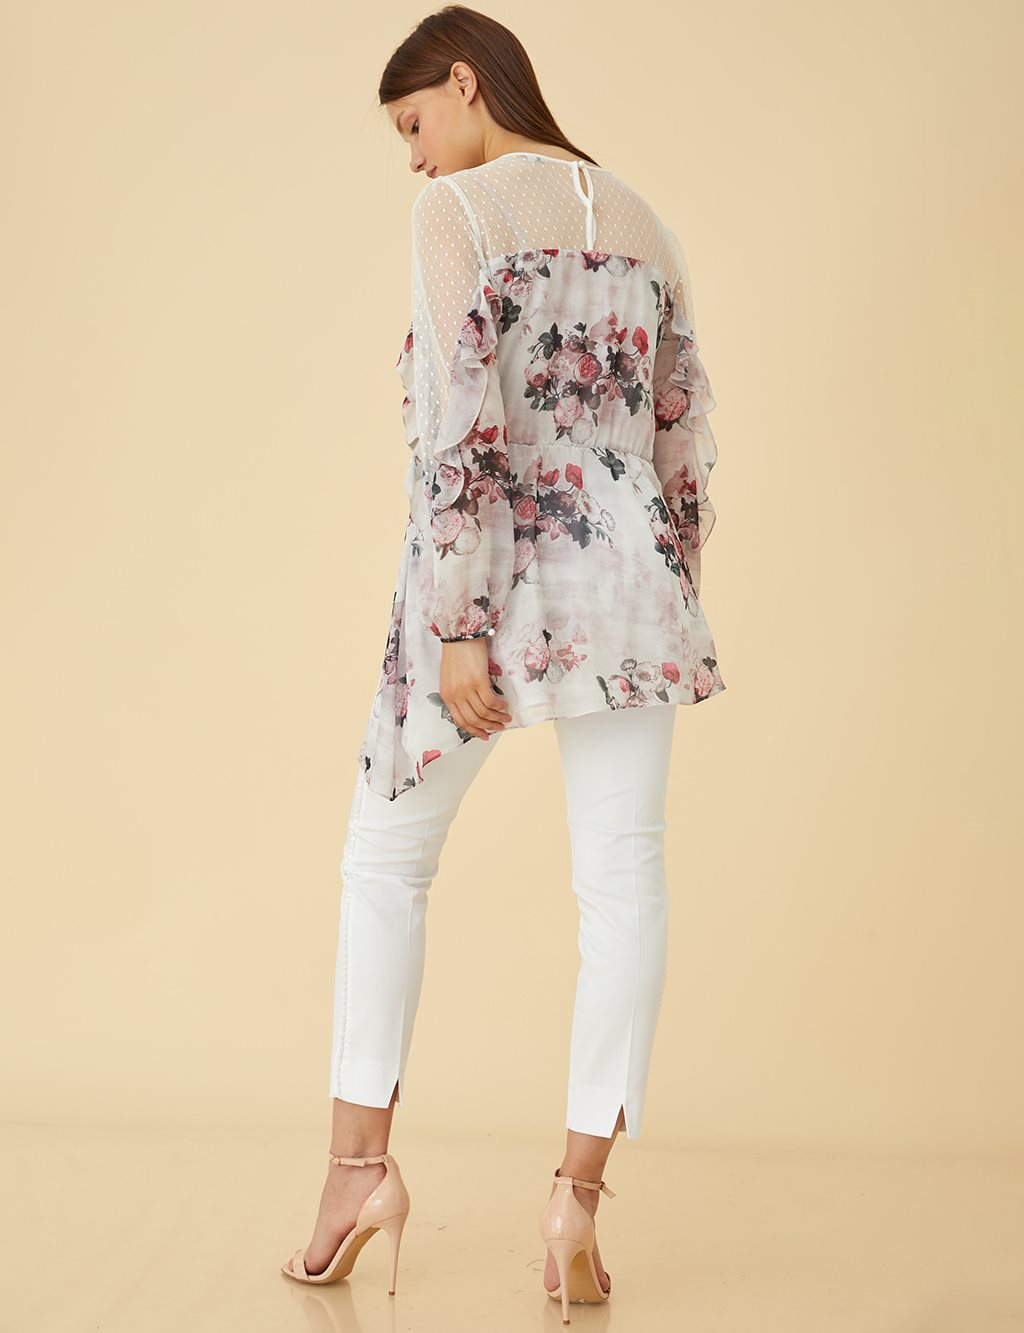 Floral Blouse With Lace Details Powder B9 10142